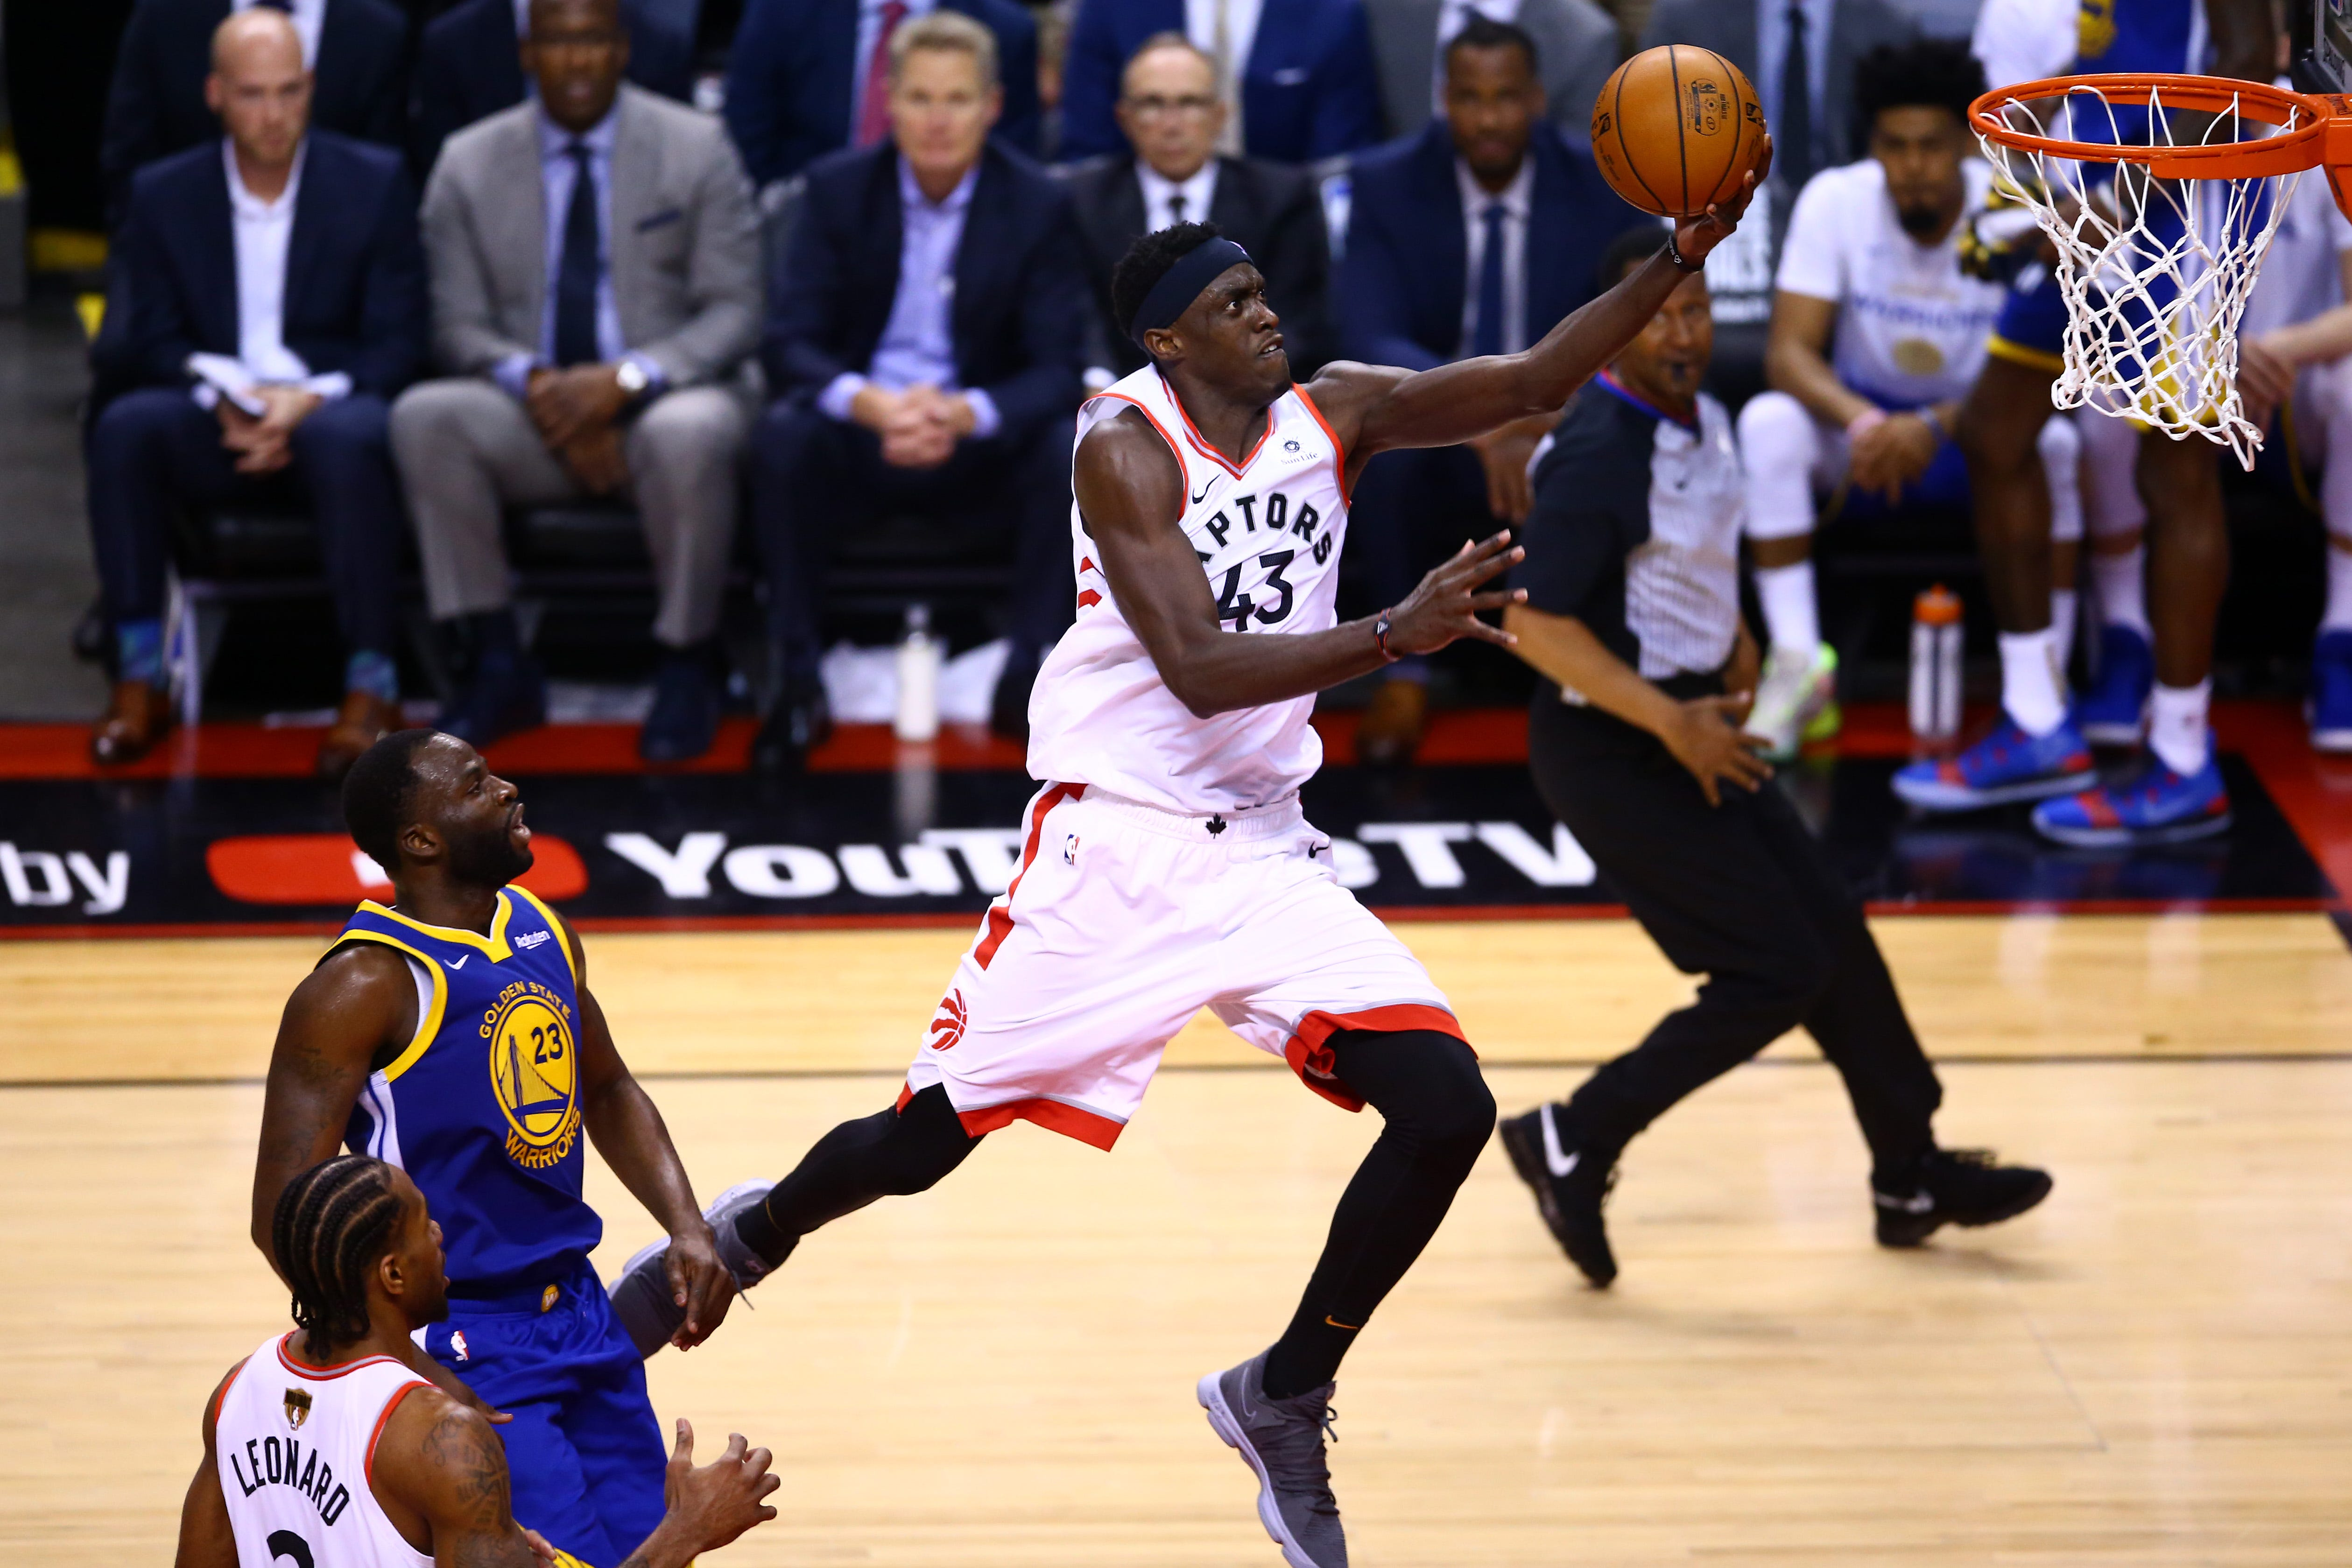 Pascal Siakam's big night leads Raptors past Warriors in Game 1 of NBA Finals